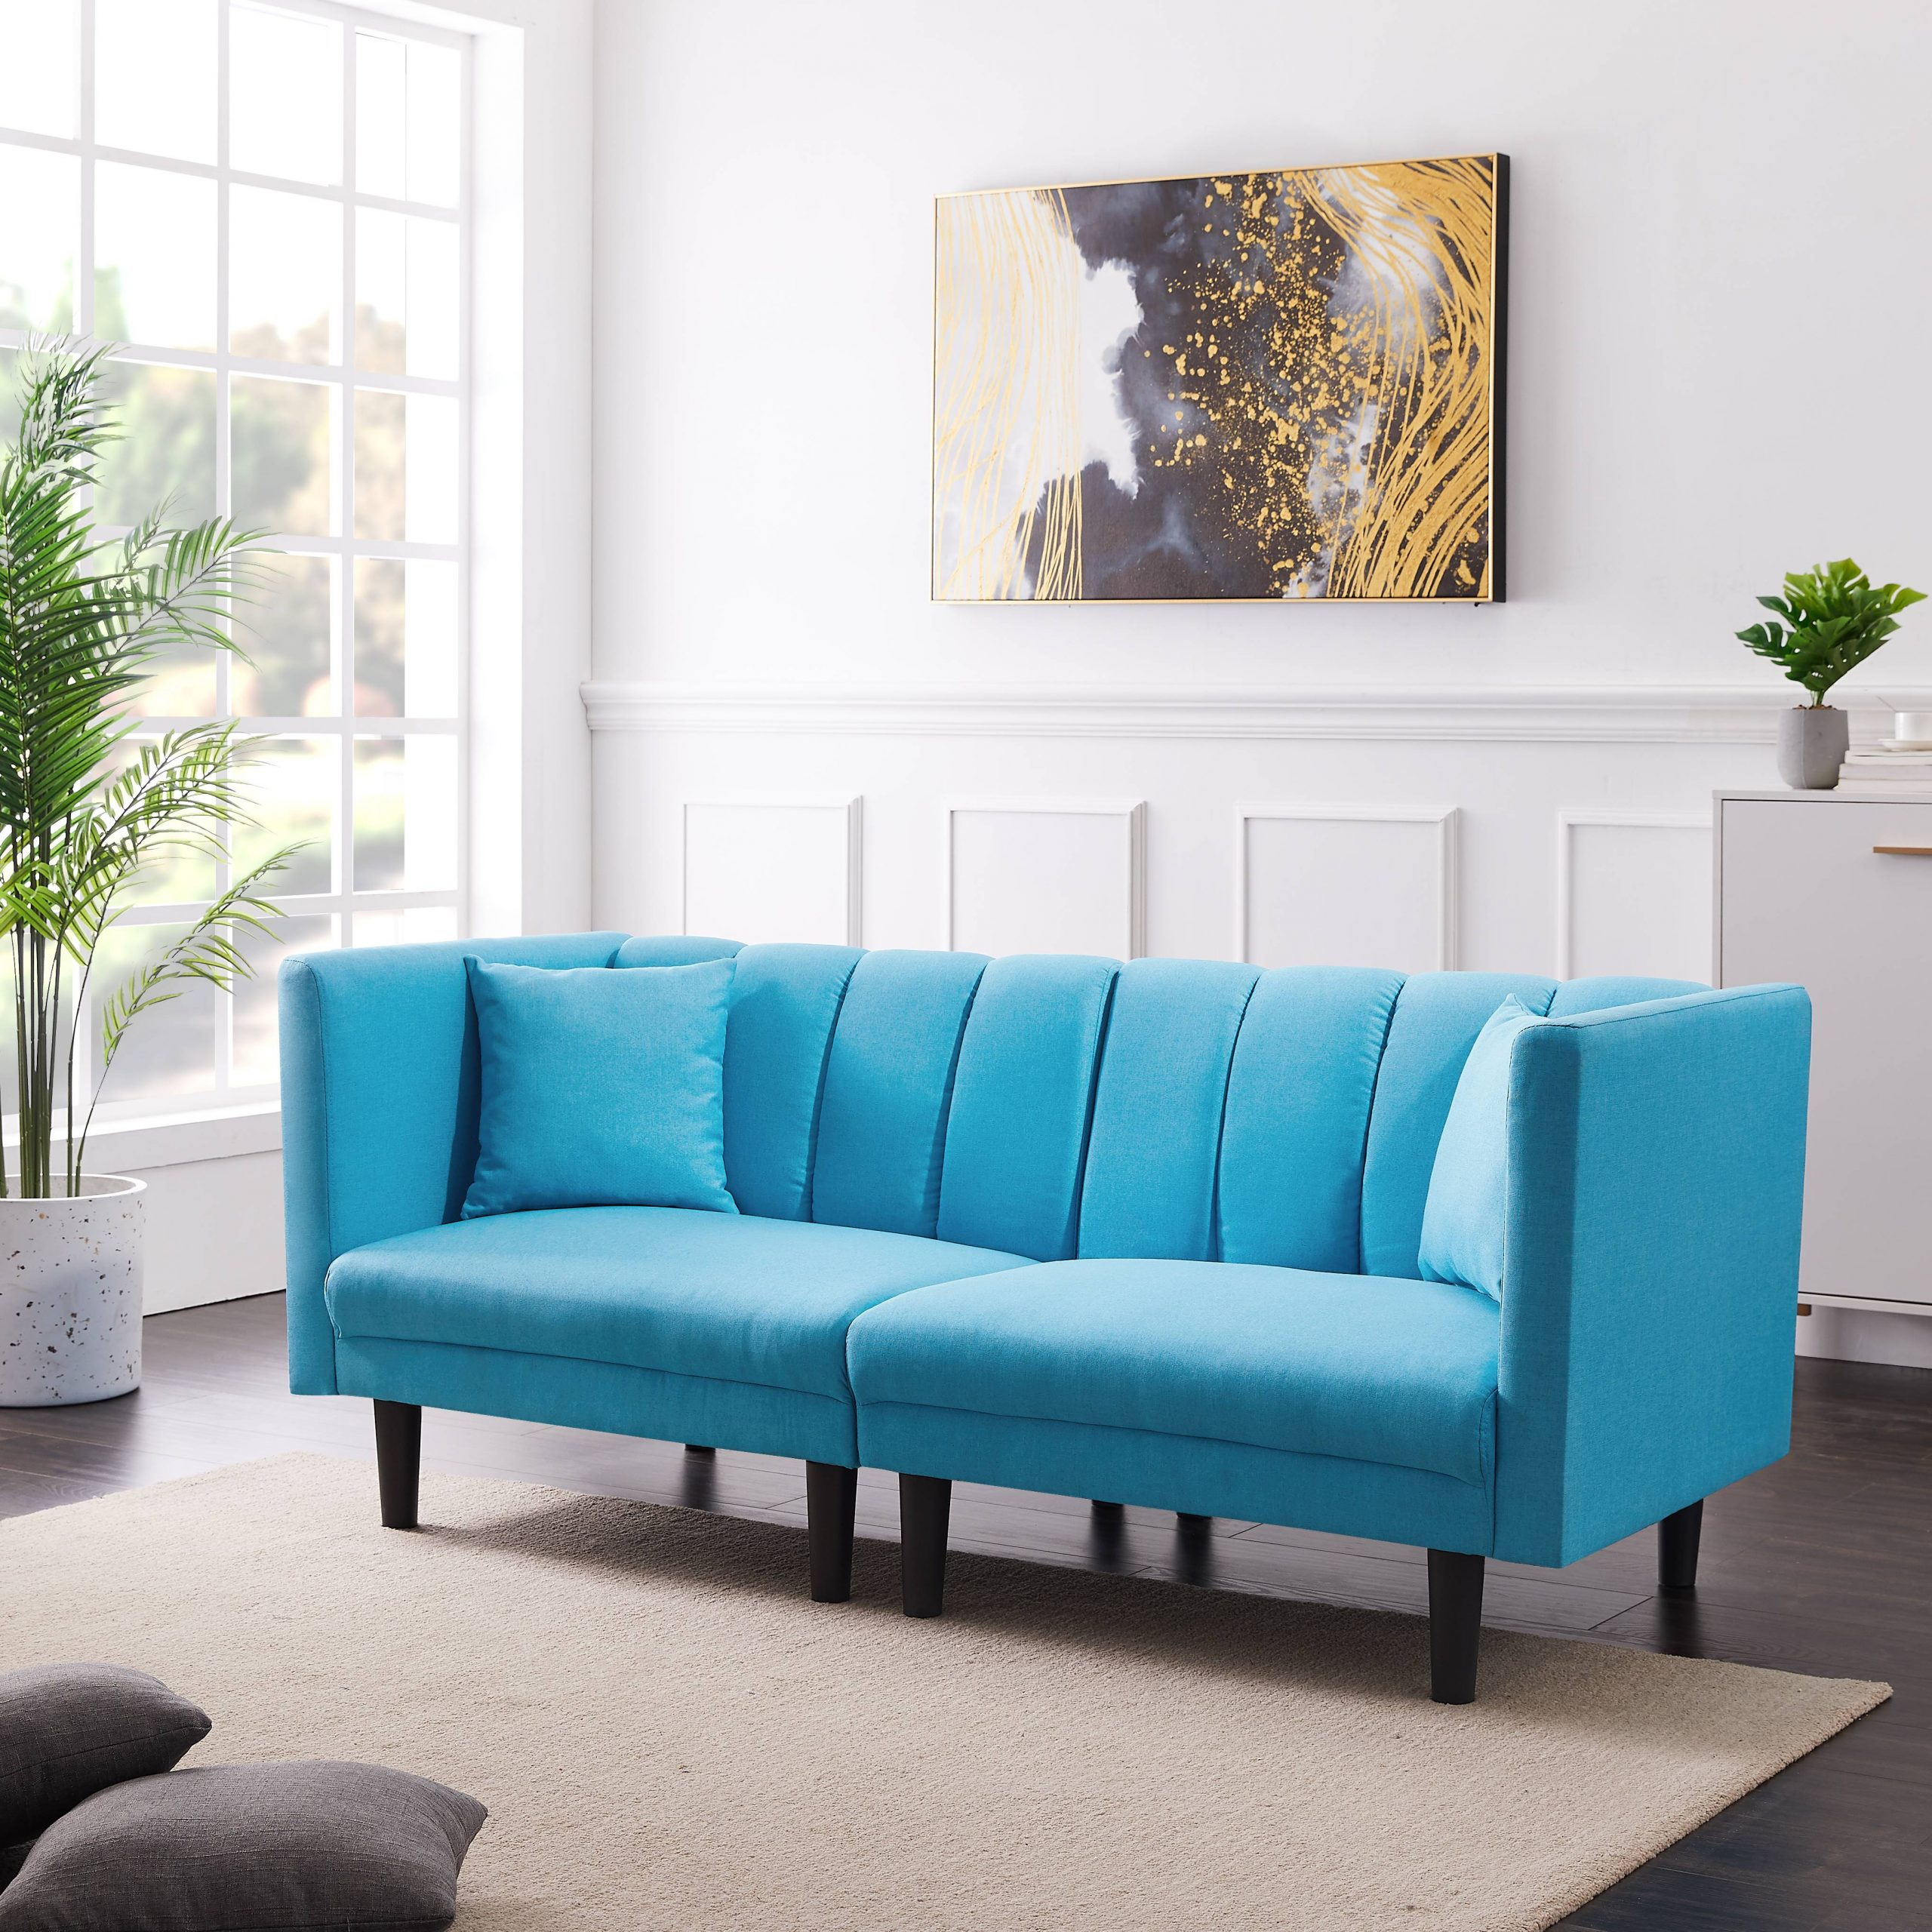 Fabric Futon Sofa Bed, Twin Sofa Sleeper Bed With Armrest Intended For Convertible Sofas (View 11 of 15)